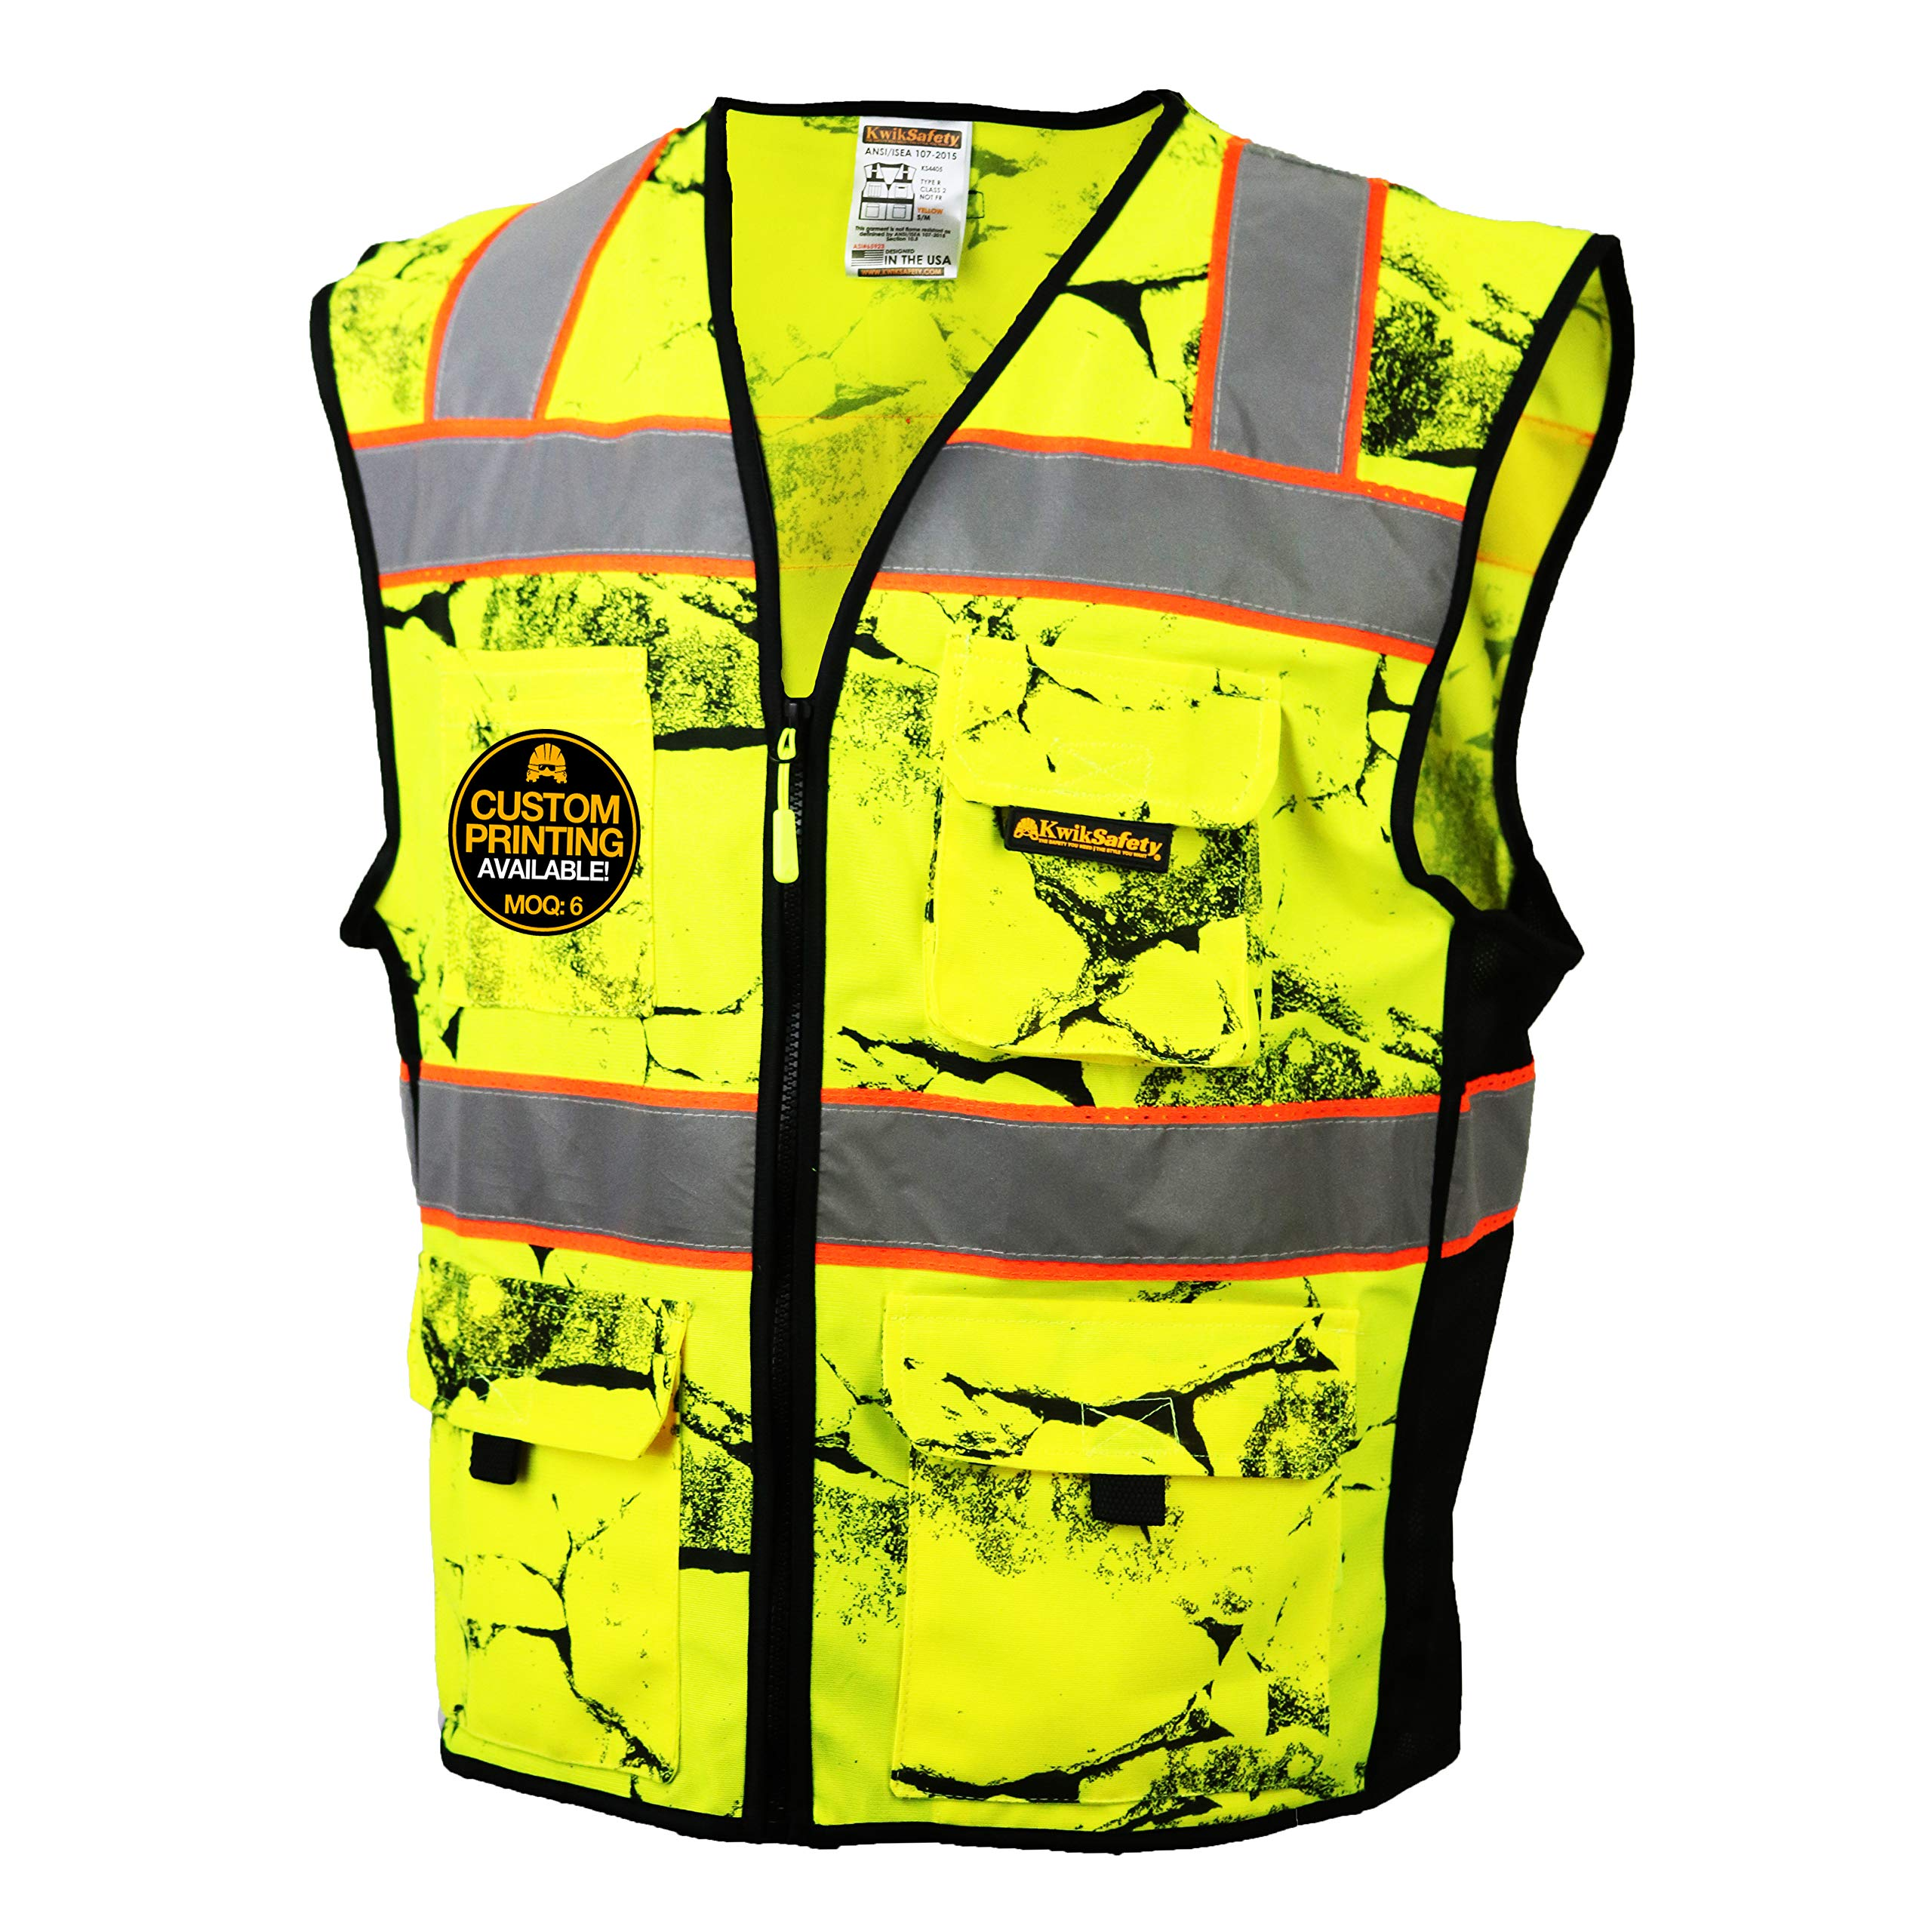 KwikSafety (Charlotte, NC) UNCLE WILLY'S WALL (10 Pockets) Class 2 ANSI High Visibility Reflective Safety Vest Heavy Duty Mesh with Zipper and HiVis for Construction Work HiViz Men Yellow Black L/XL